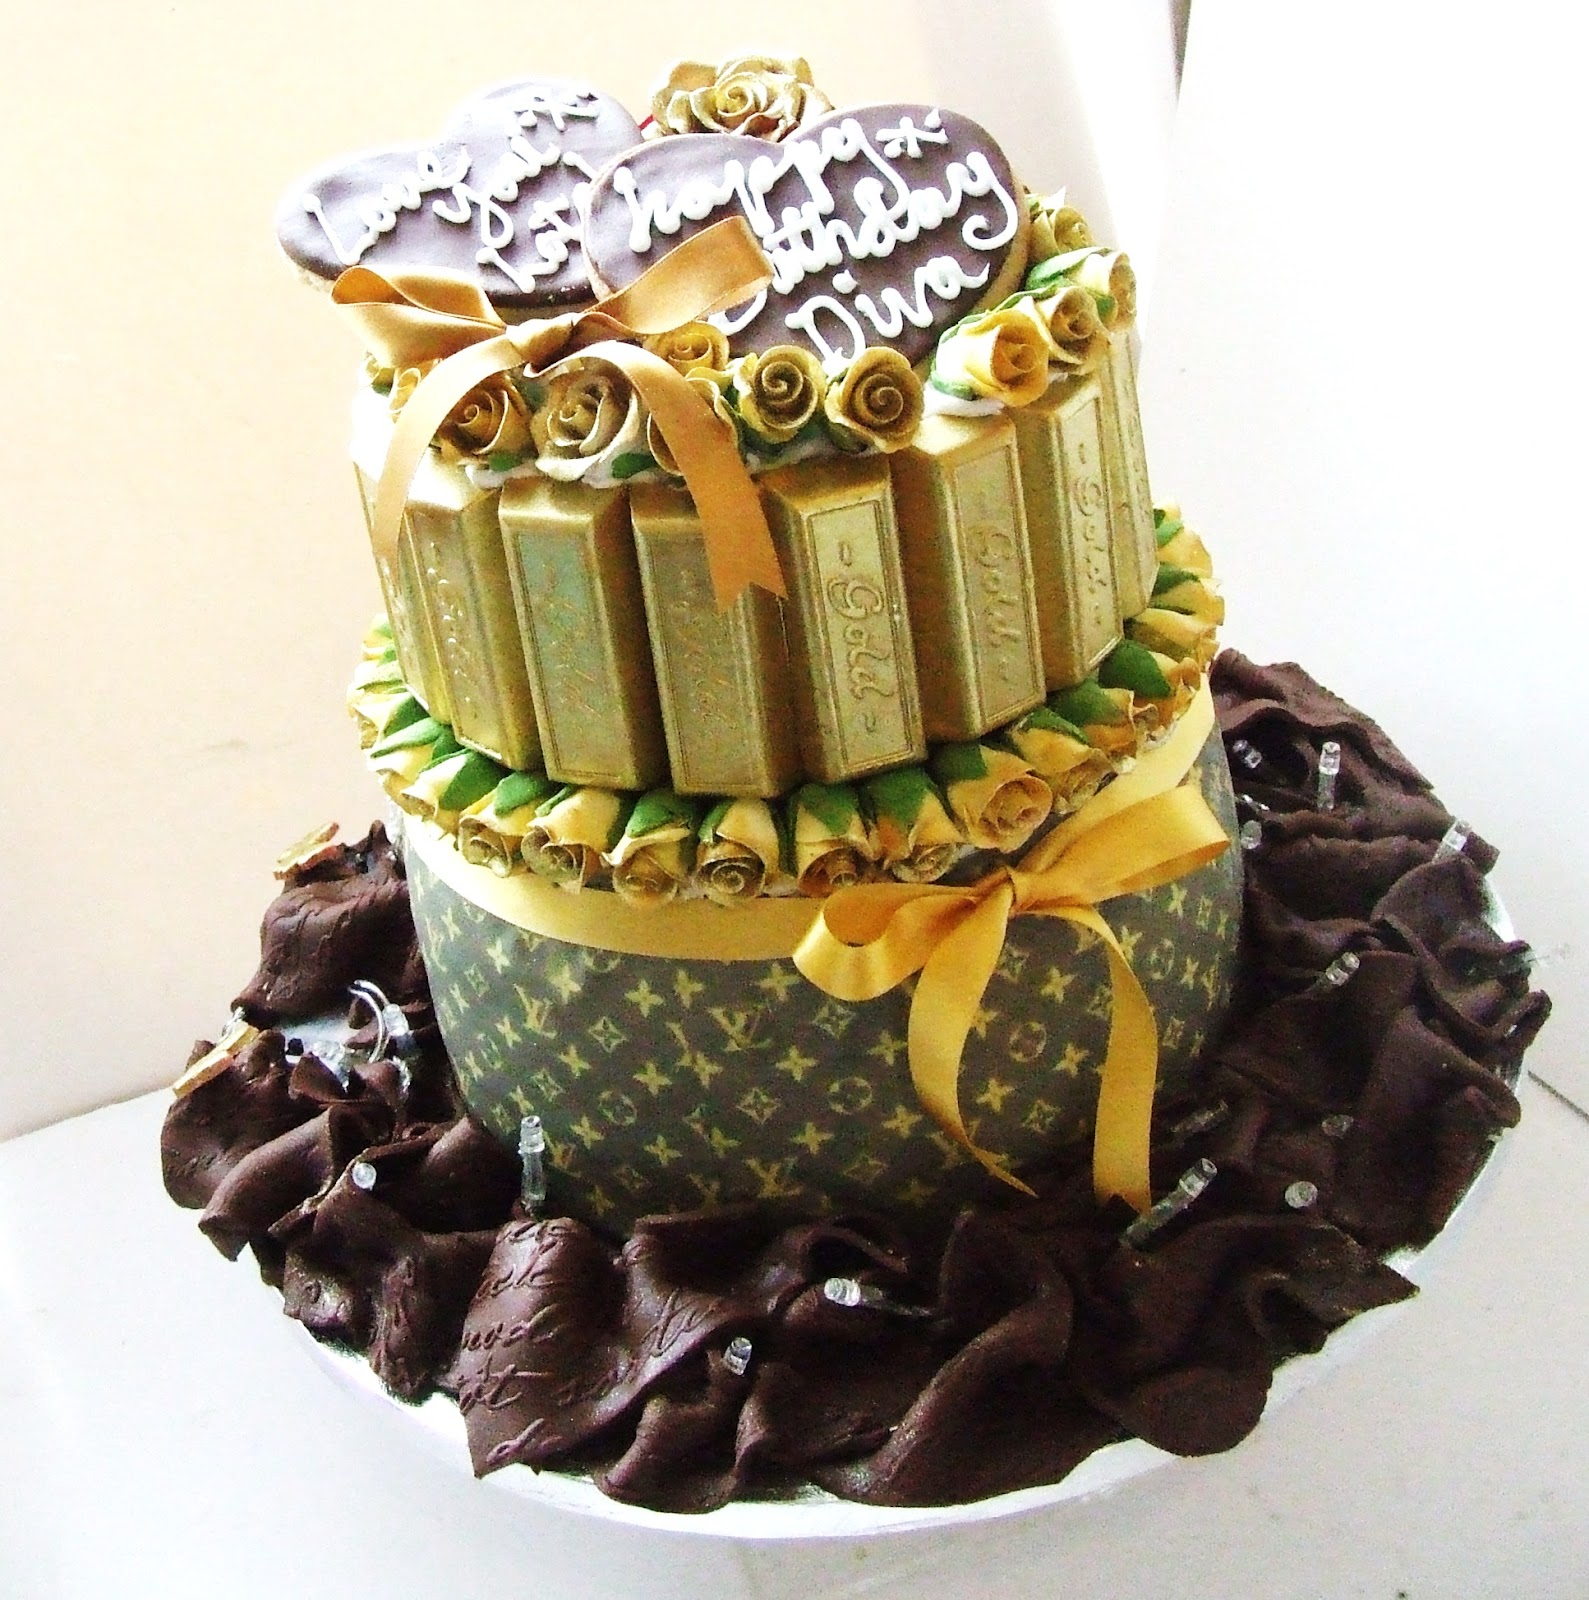 Iced Out Company Cakes Louis Vuitton Engagment Birthday Cake